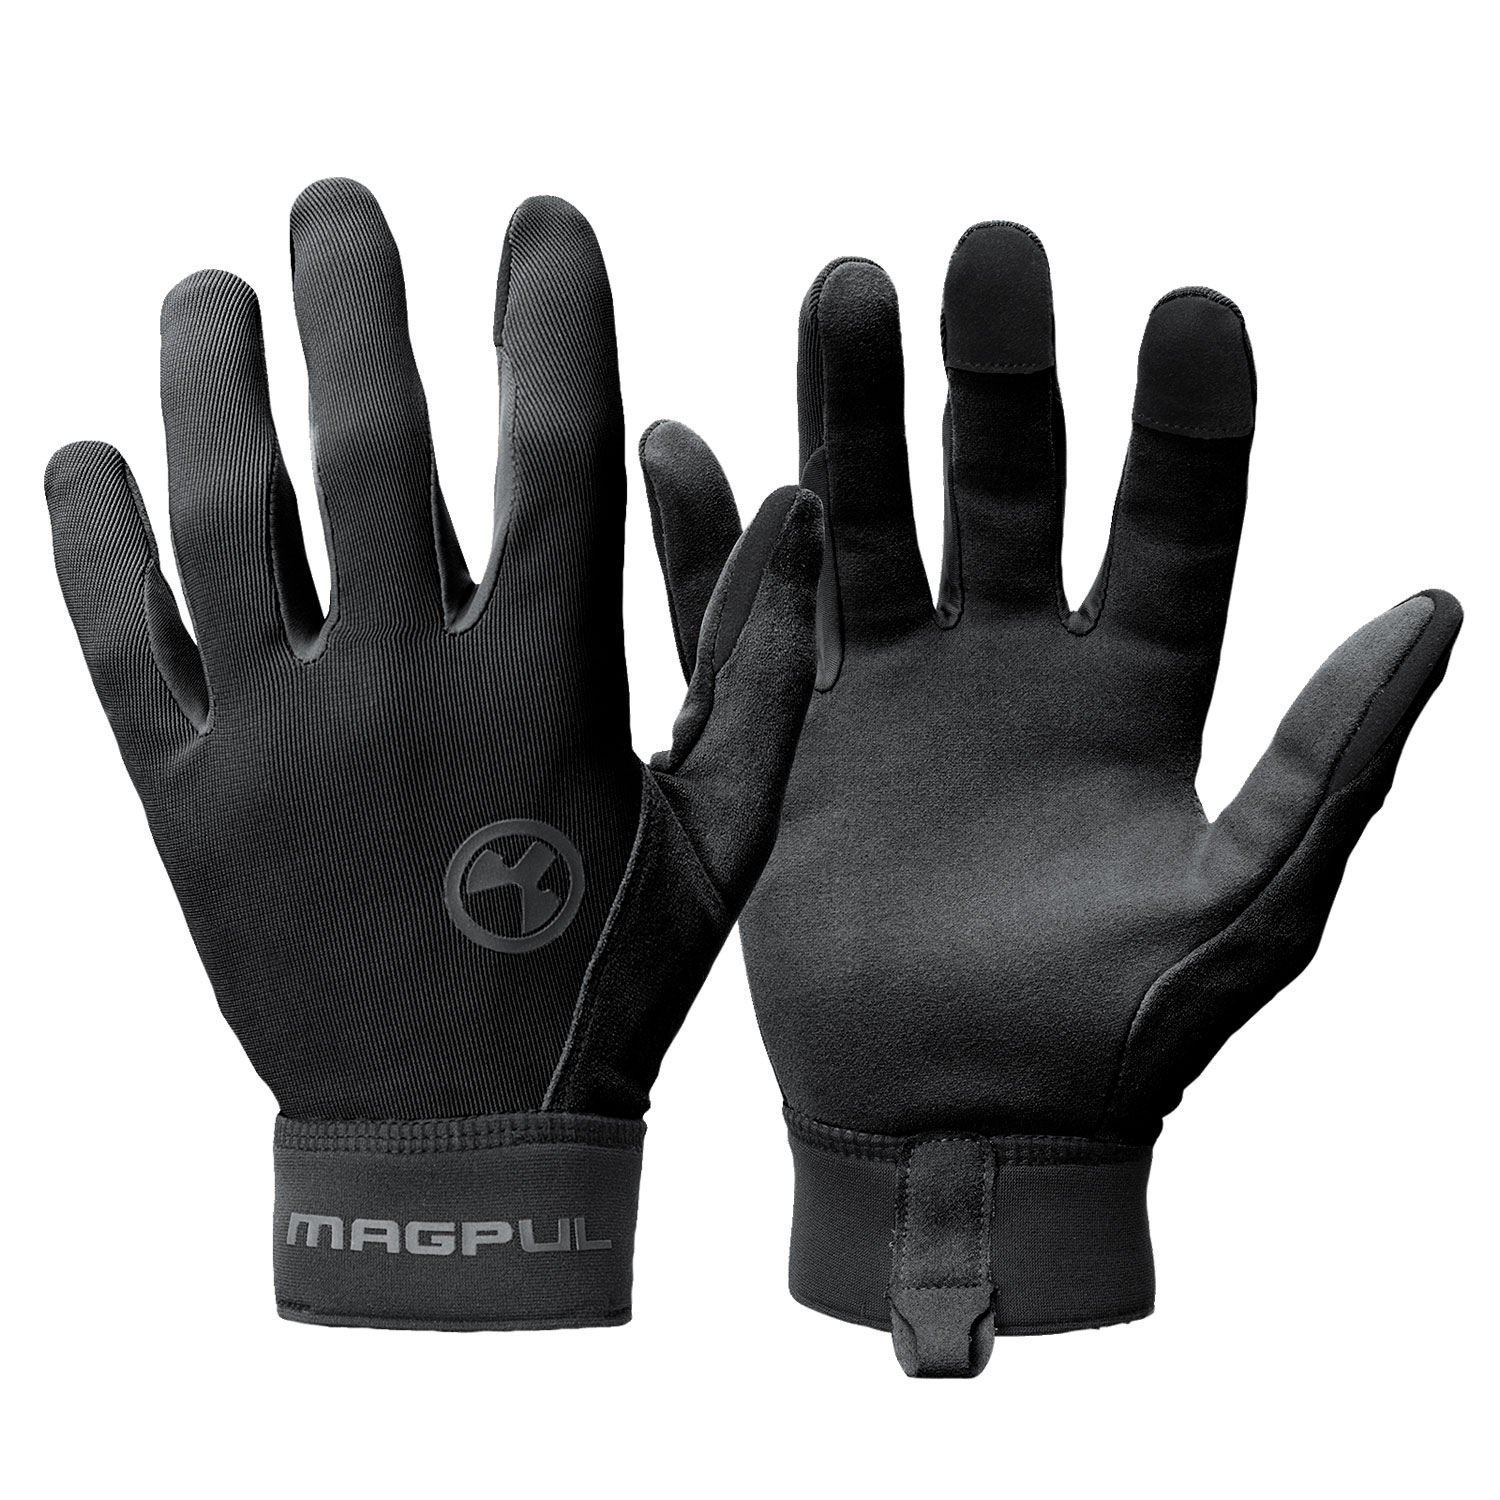 Magpul MAG1014-001 Technical Glove 2.0 Large Black